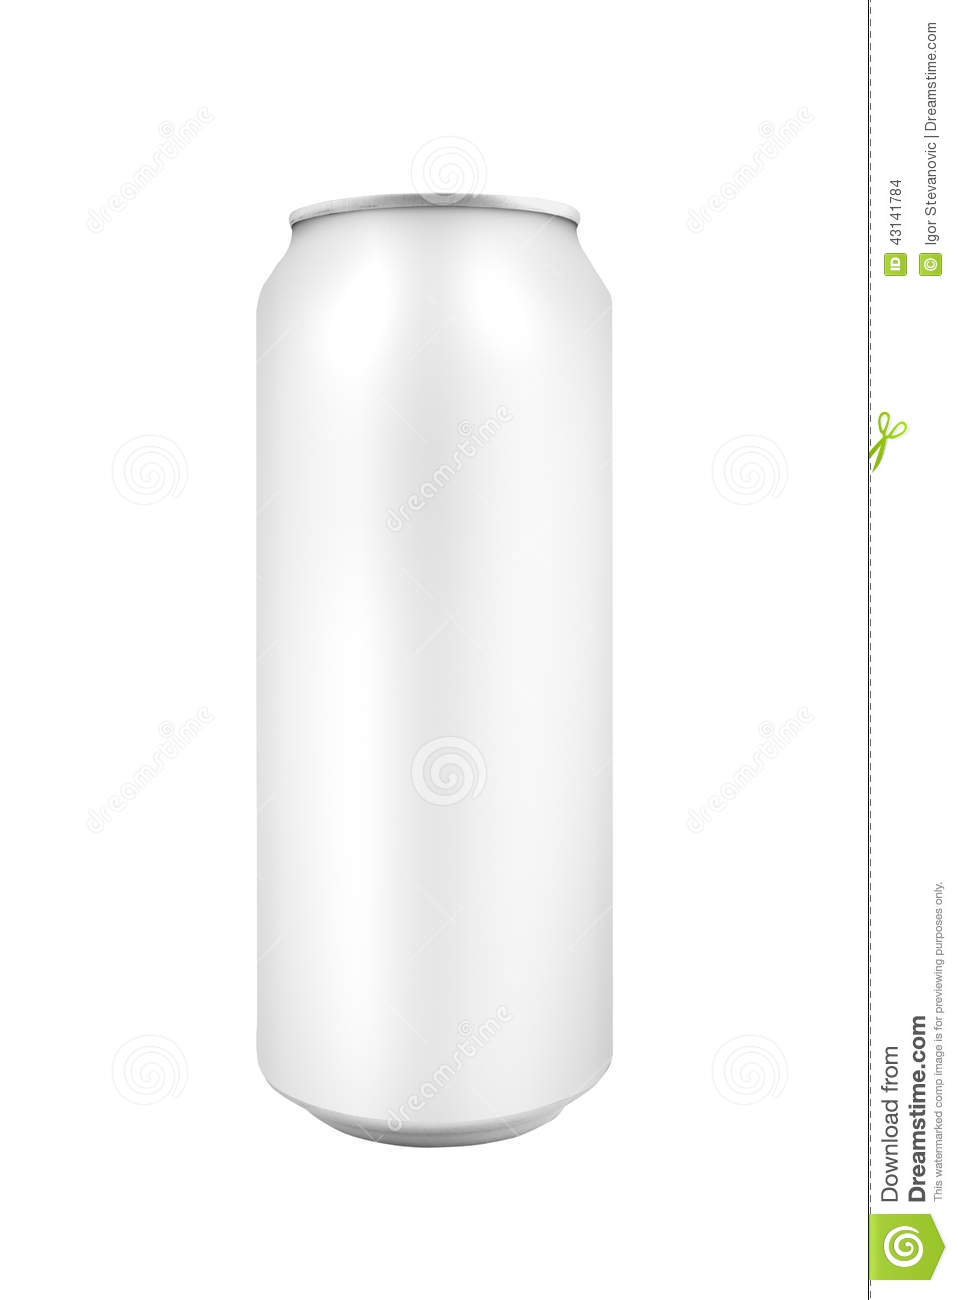 Energy Drink Can Template